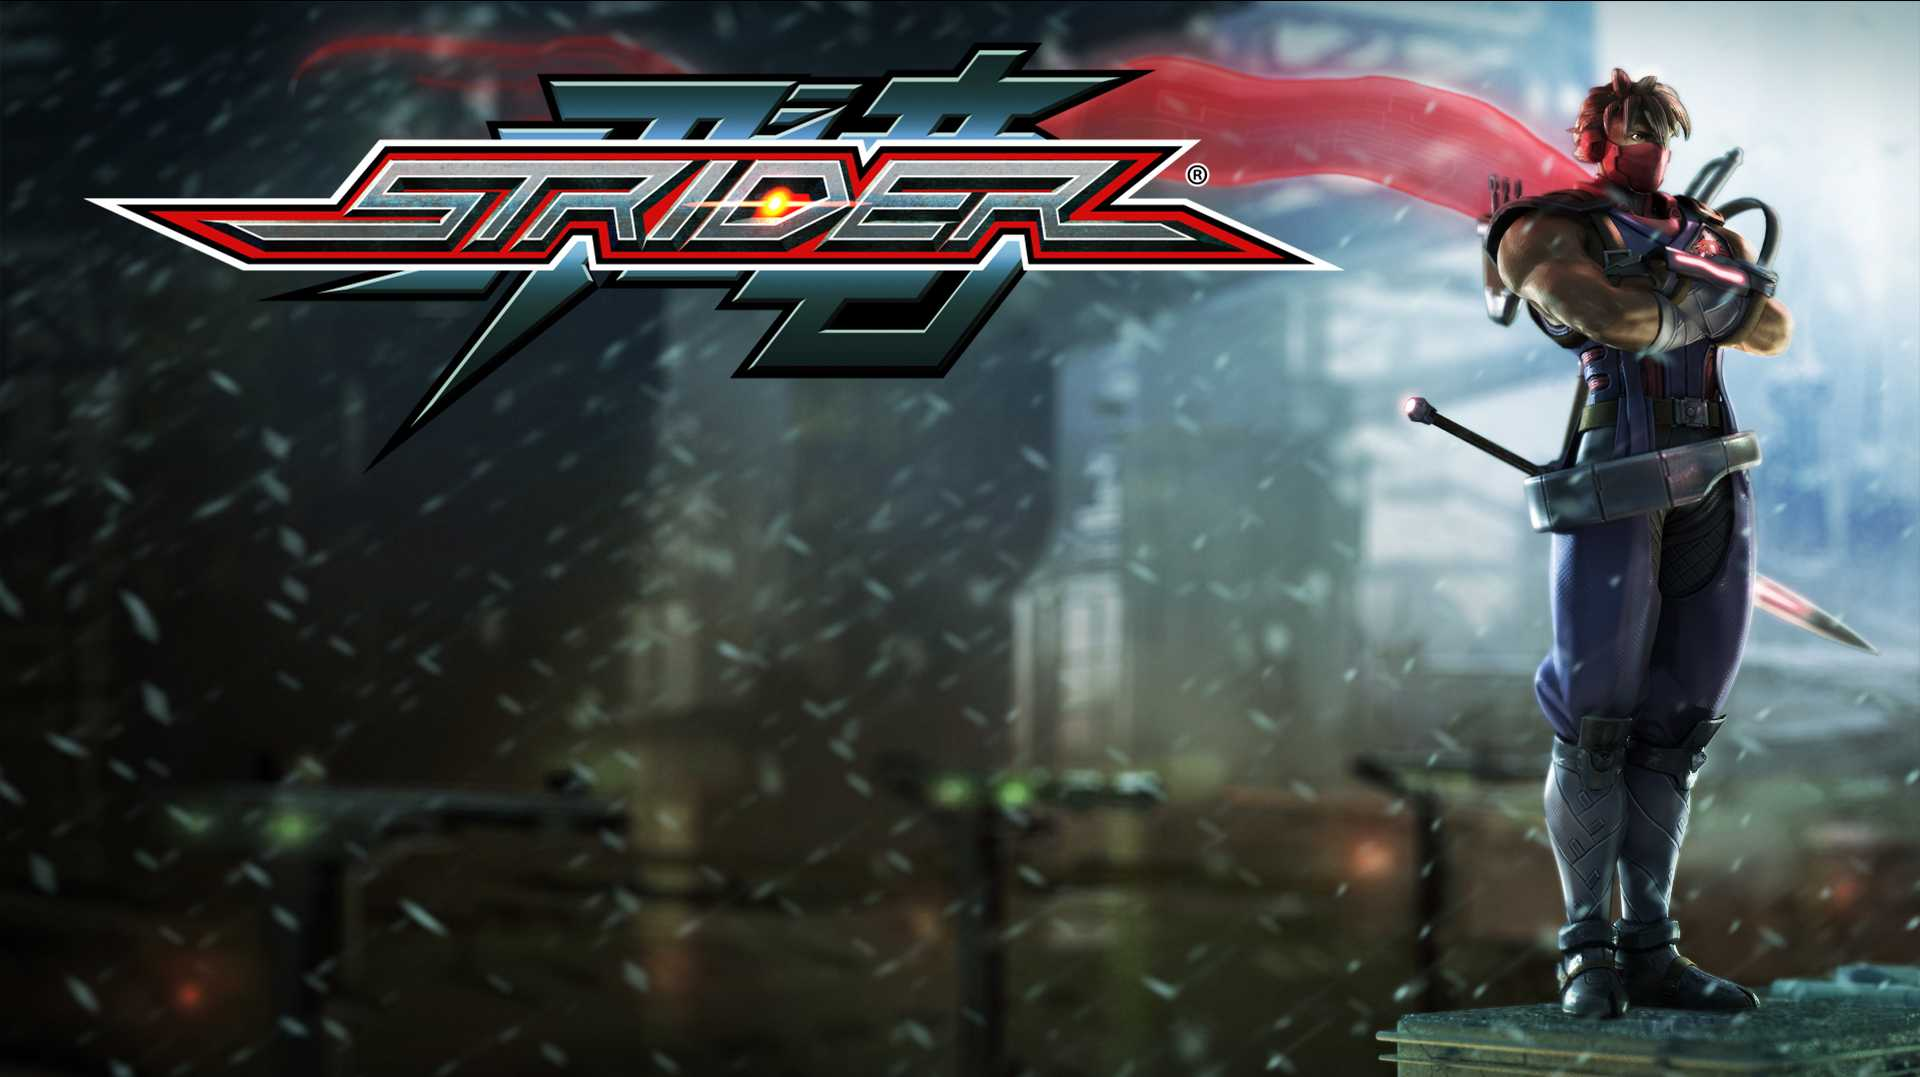 Strider review (XBLA)